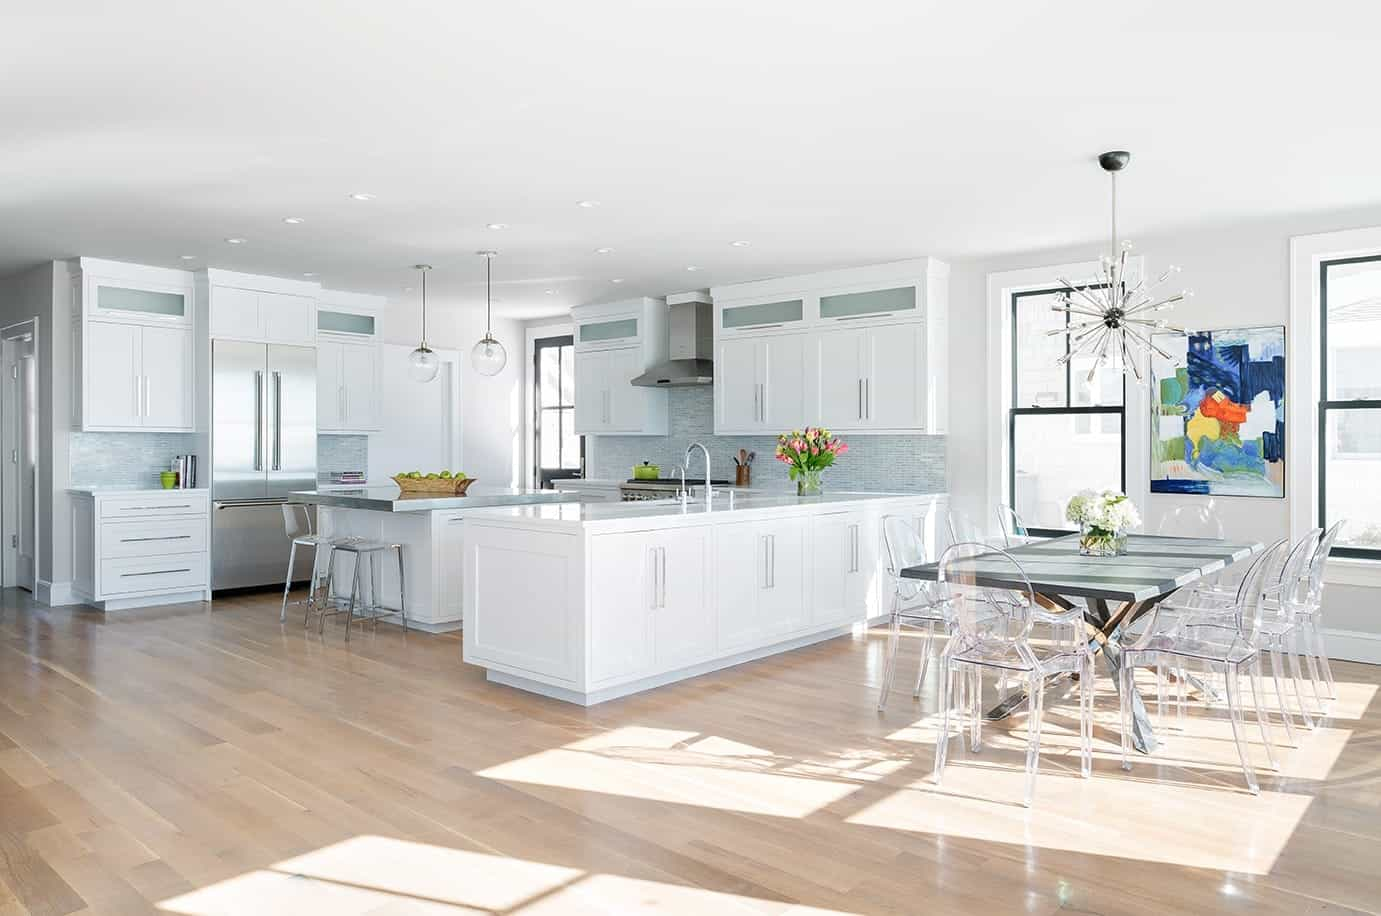 Bright White Open Kitchen And Dining Room With Oak Floors (Image 4 of 12)